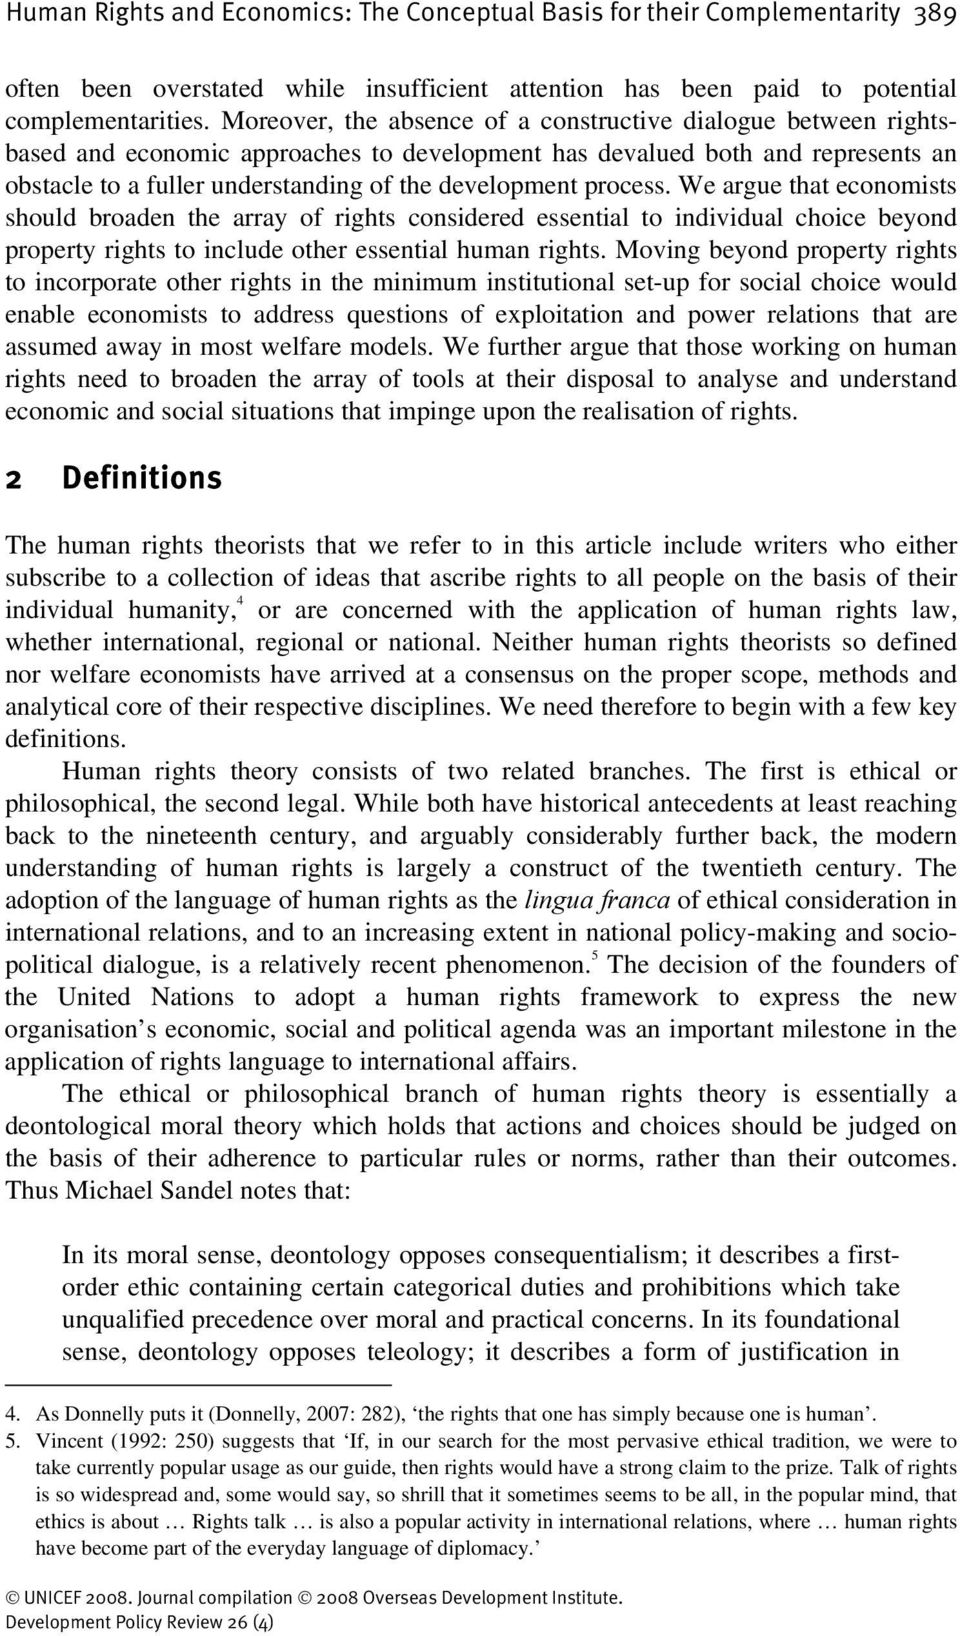 process. We argue that economists should broaden the array of rights considered essential to individual choice beyond property rights to include other essential human rights.